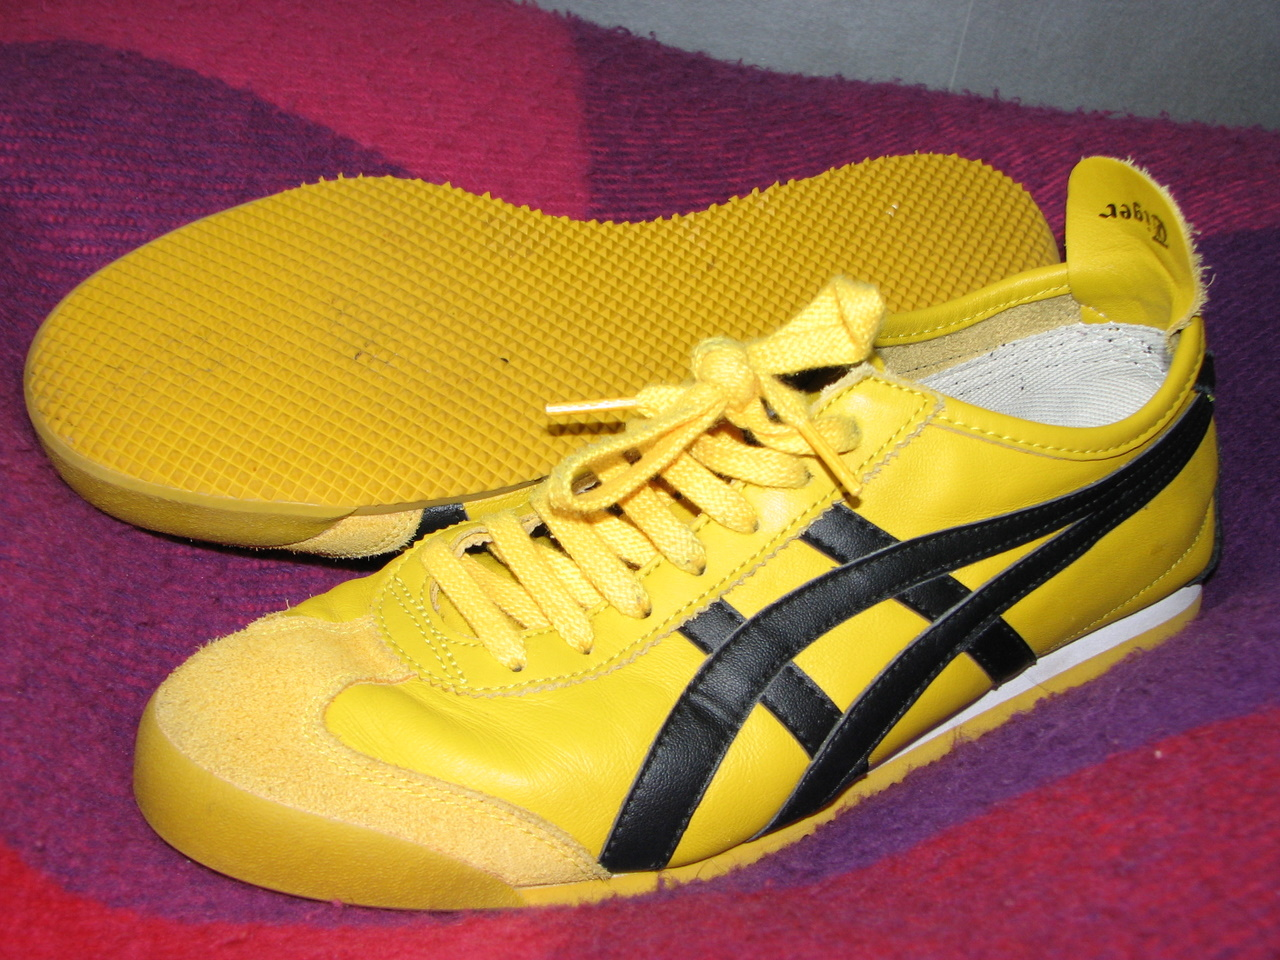 file asics onitsuka tiger mexico 66 wikimedia commons. Black Bedroom Furniture Sets. Home Design Ideas